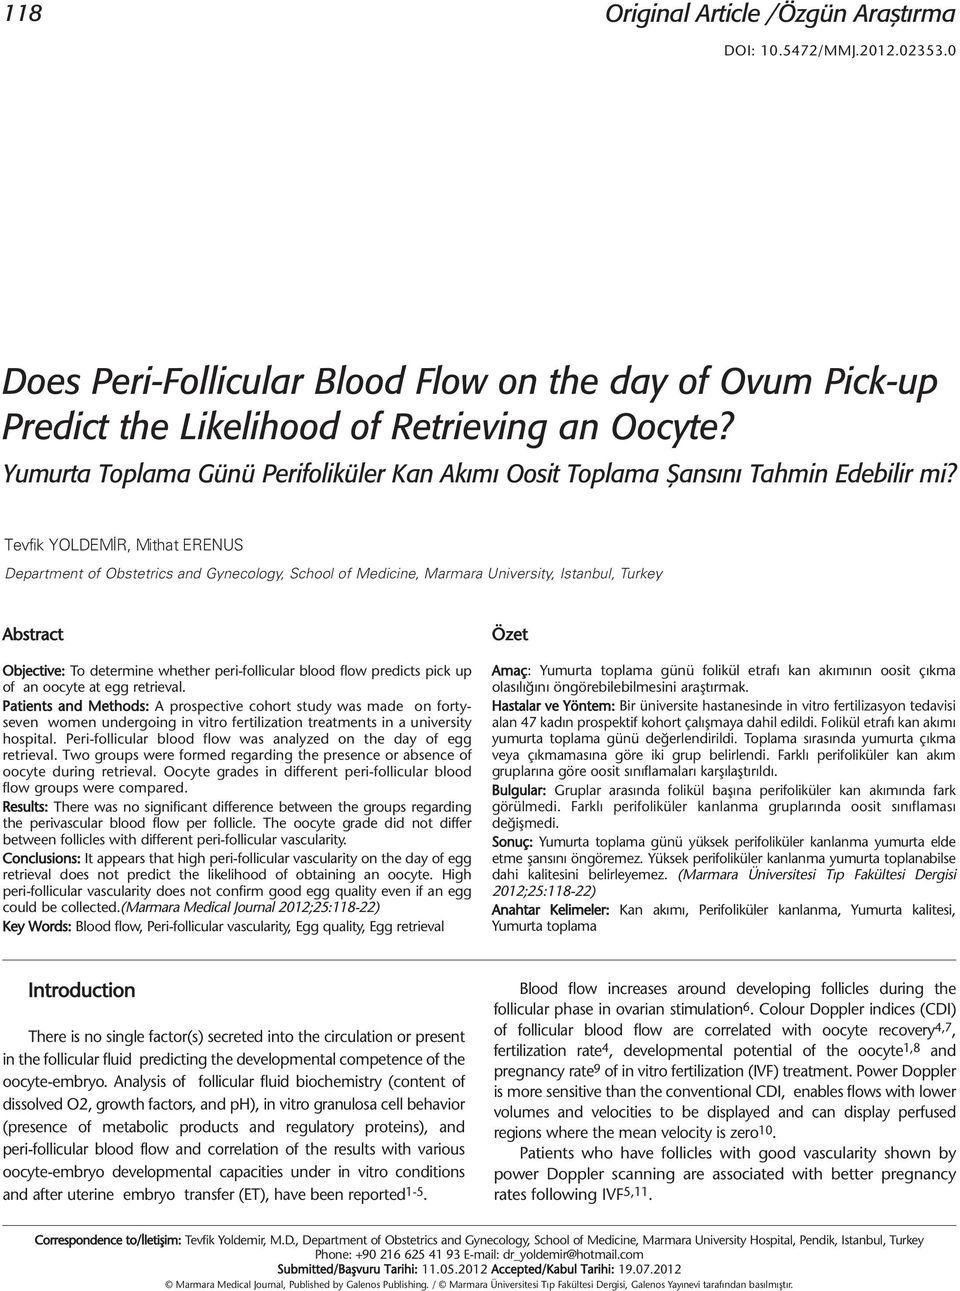 Tevfik YOLDEMİR, Mithat ERENUS Department of Obstetrics and Gynecology, School of Medicine, Marmara University, Istanbul, Turkey Abstract Objective: To determine whether peri-follicular blood flow